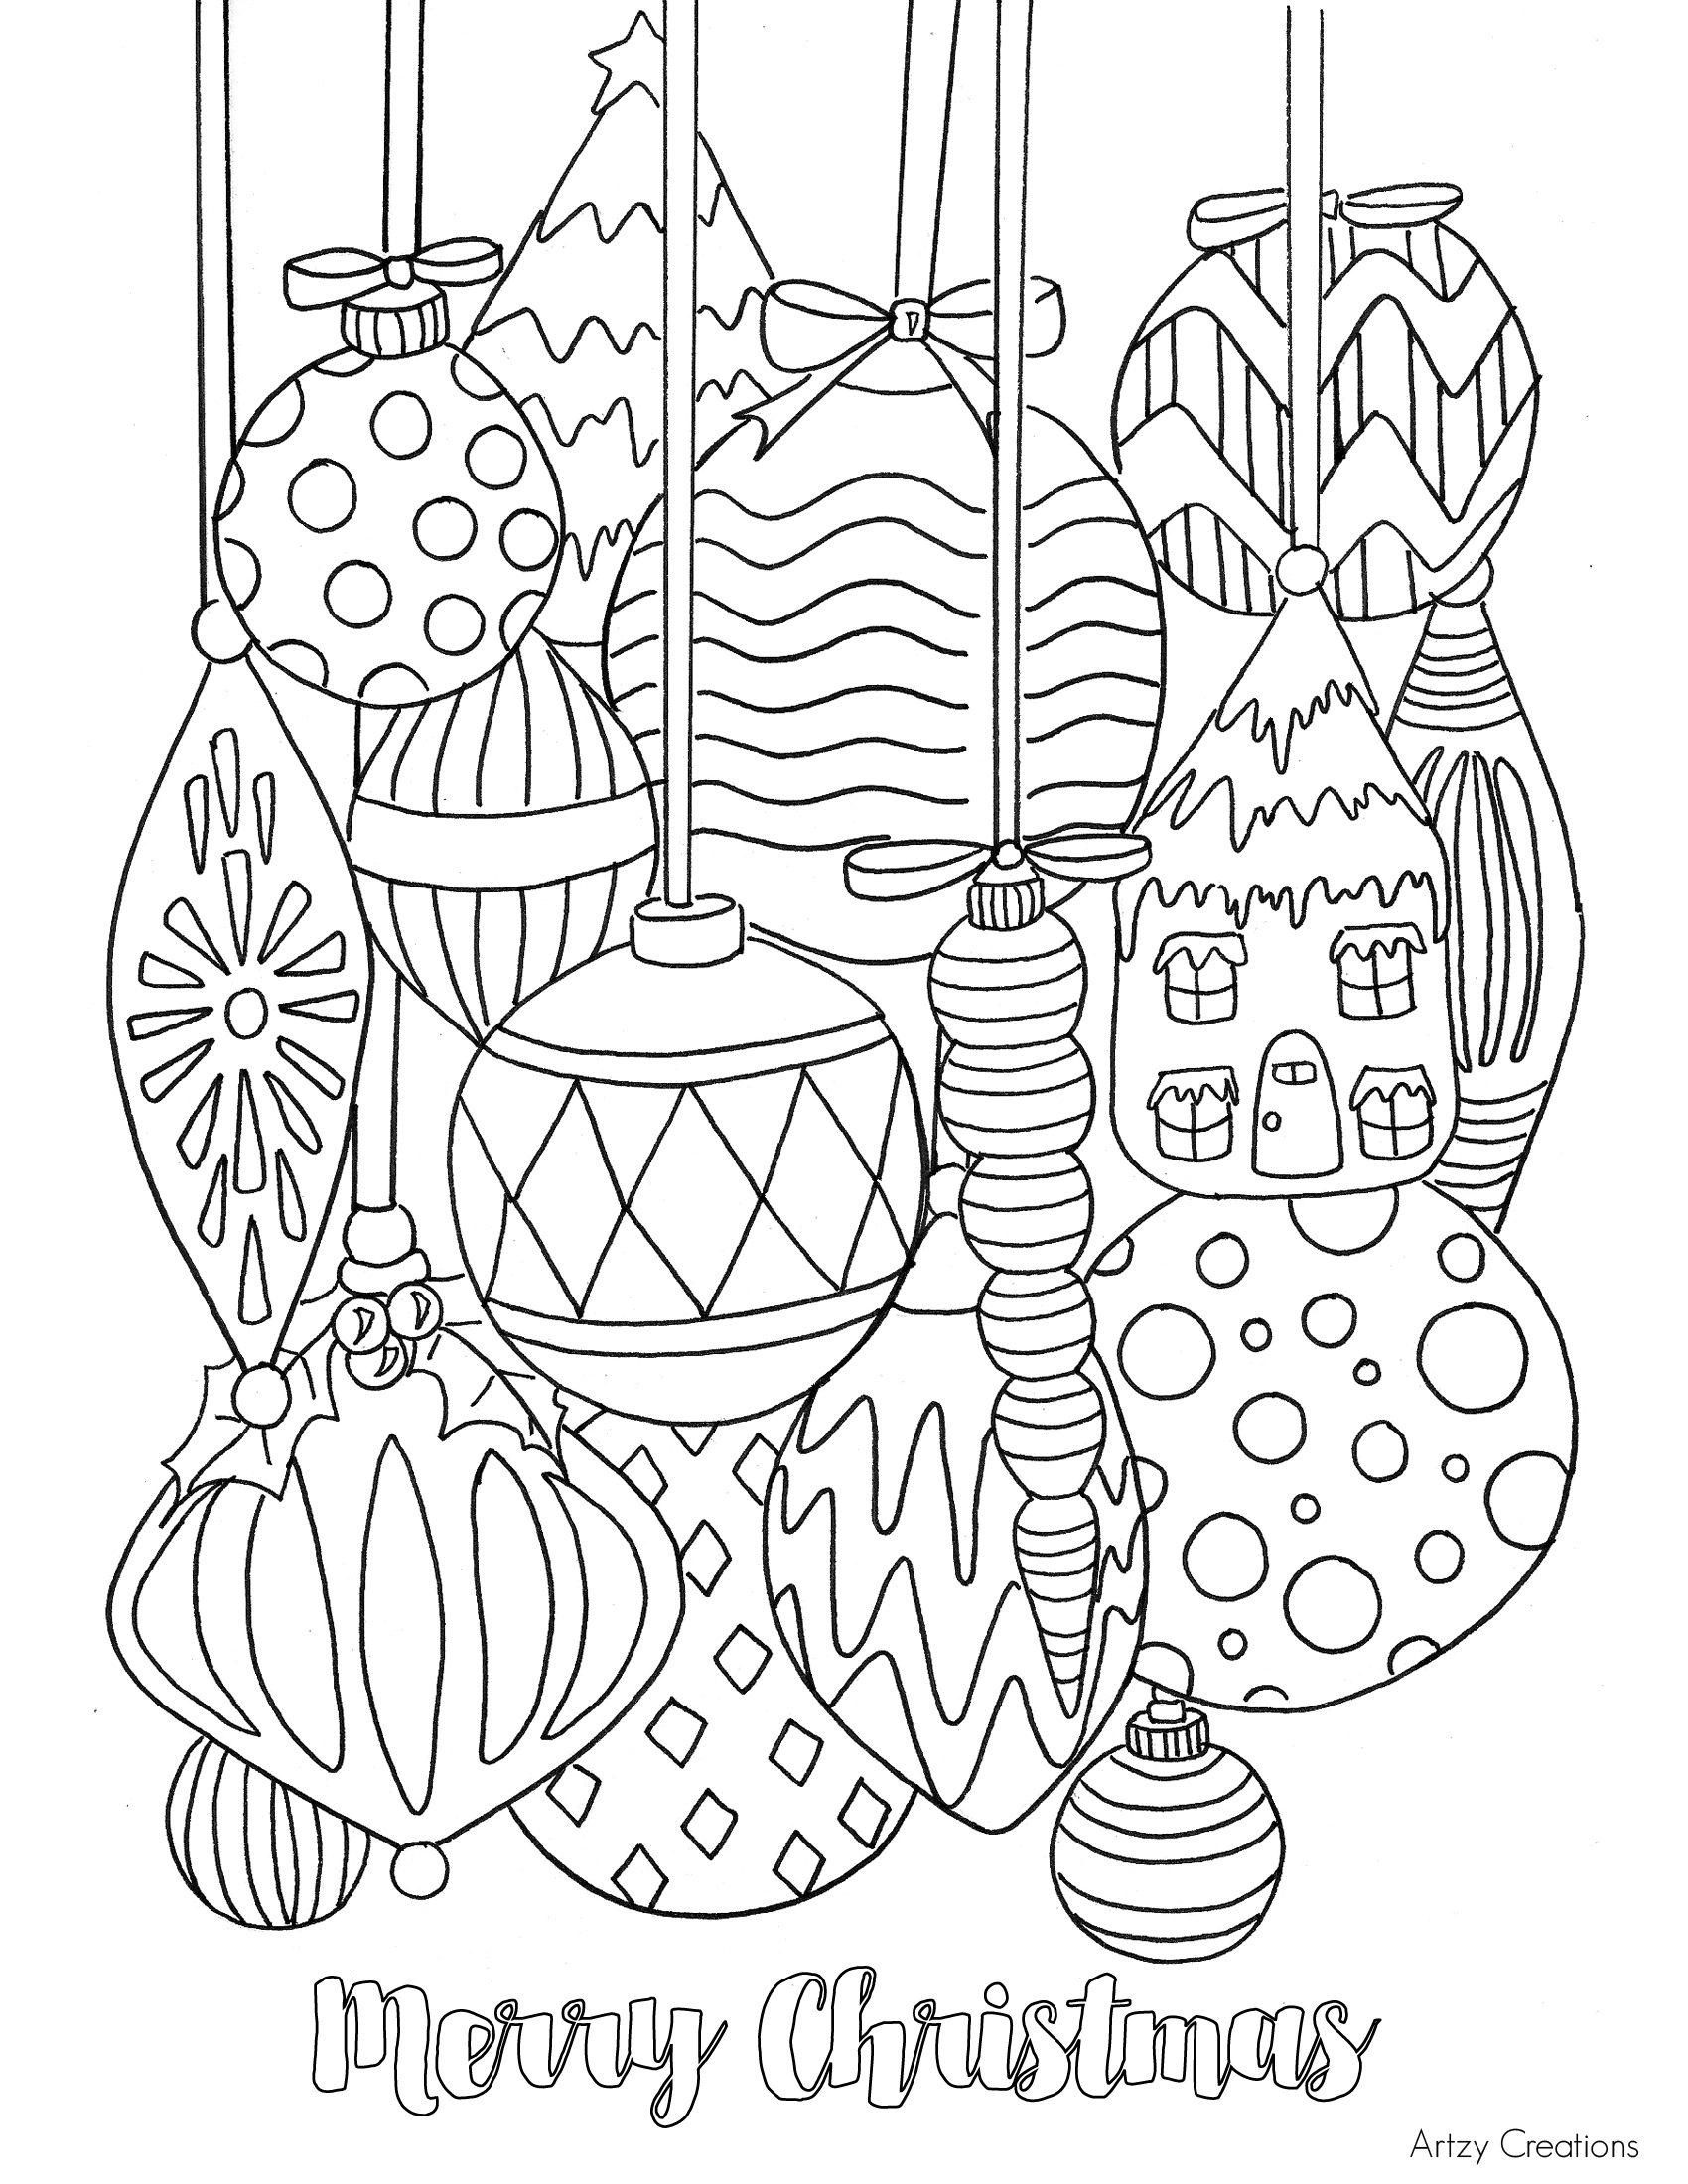 Coloring Pages ~ Christmasng Worksheets Pages Excelent Free - Free Printable Christmas Coloring Pages